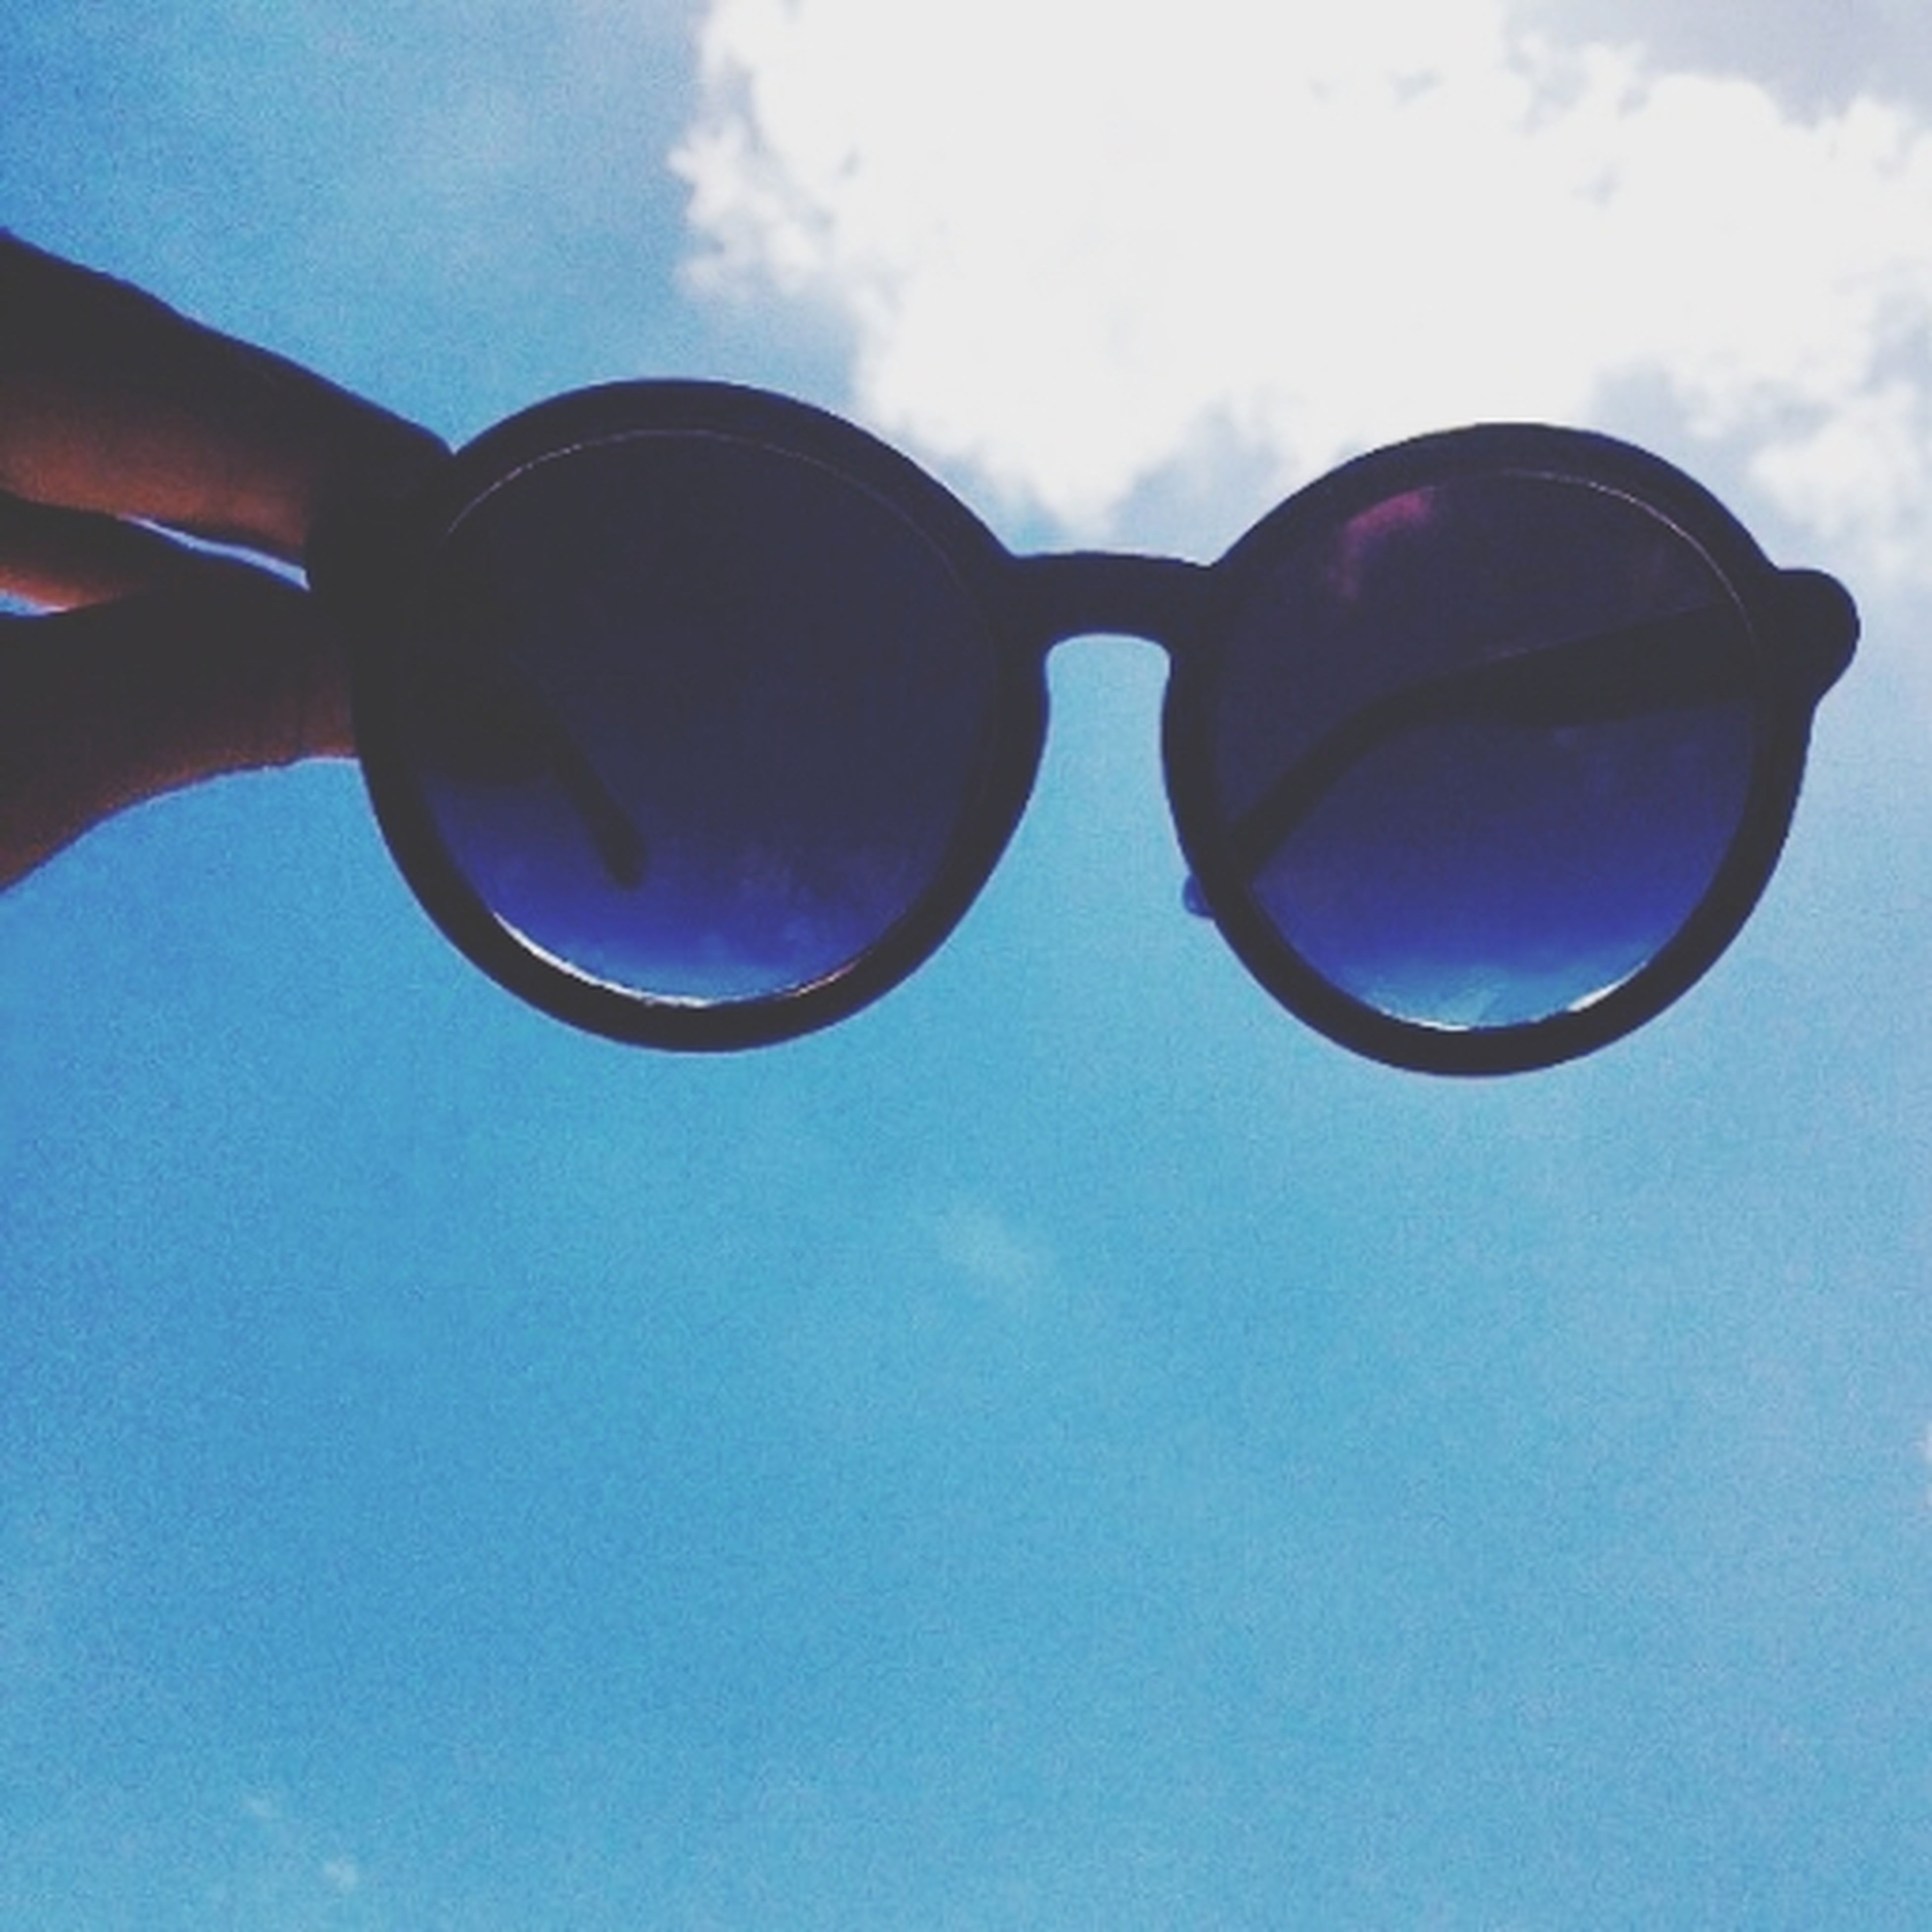 blue, sky, sunglasses, low angle view, reflection, close-up, part of, leisure activity, transparent, cloud - sky, day, lifestyles, glass - material, mid-air, balloon, cloud, outdoors, sunlight